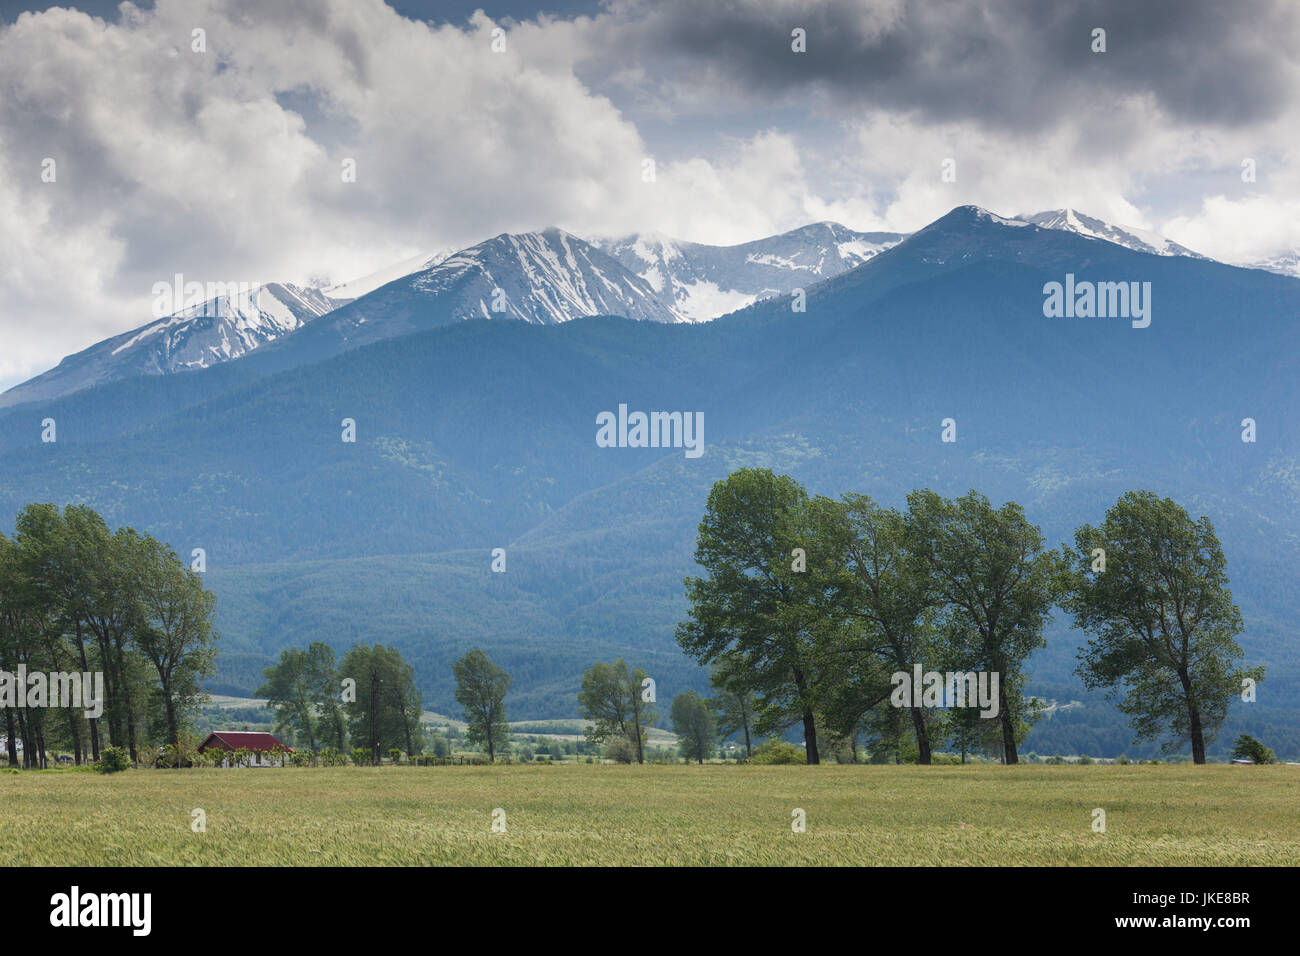 Bulgaria, Southern Mountains, Bansko, ski resort, landscape with Pirin Mountains - Stock Image